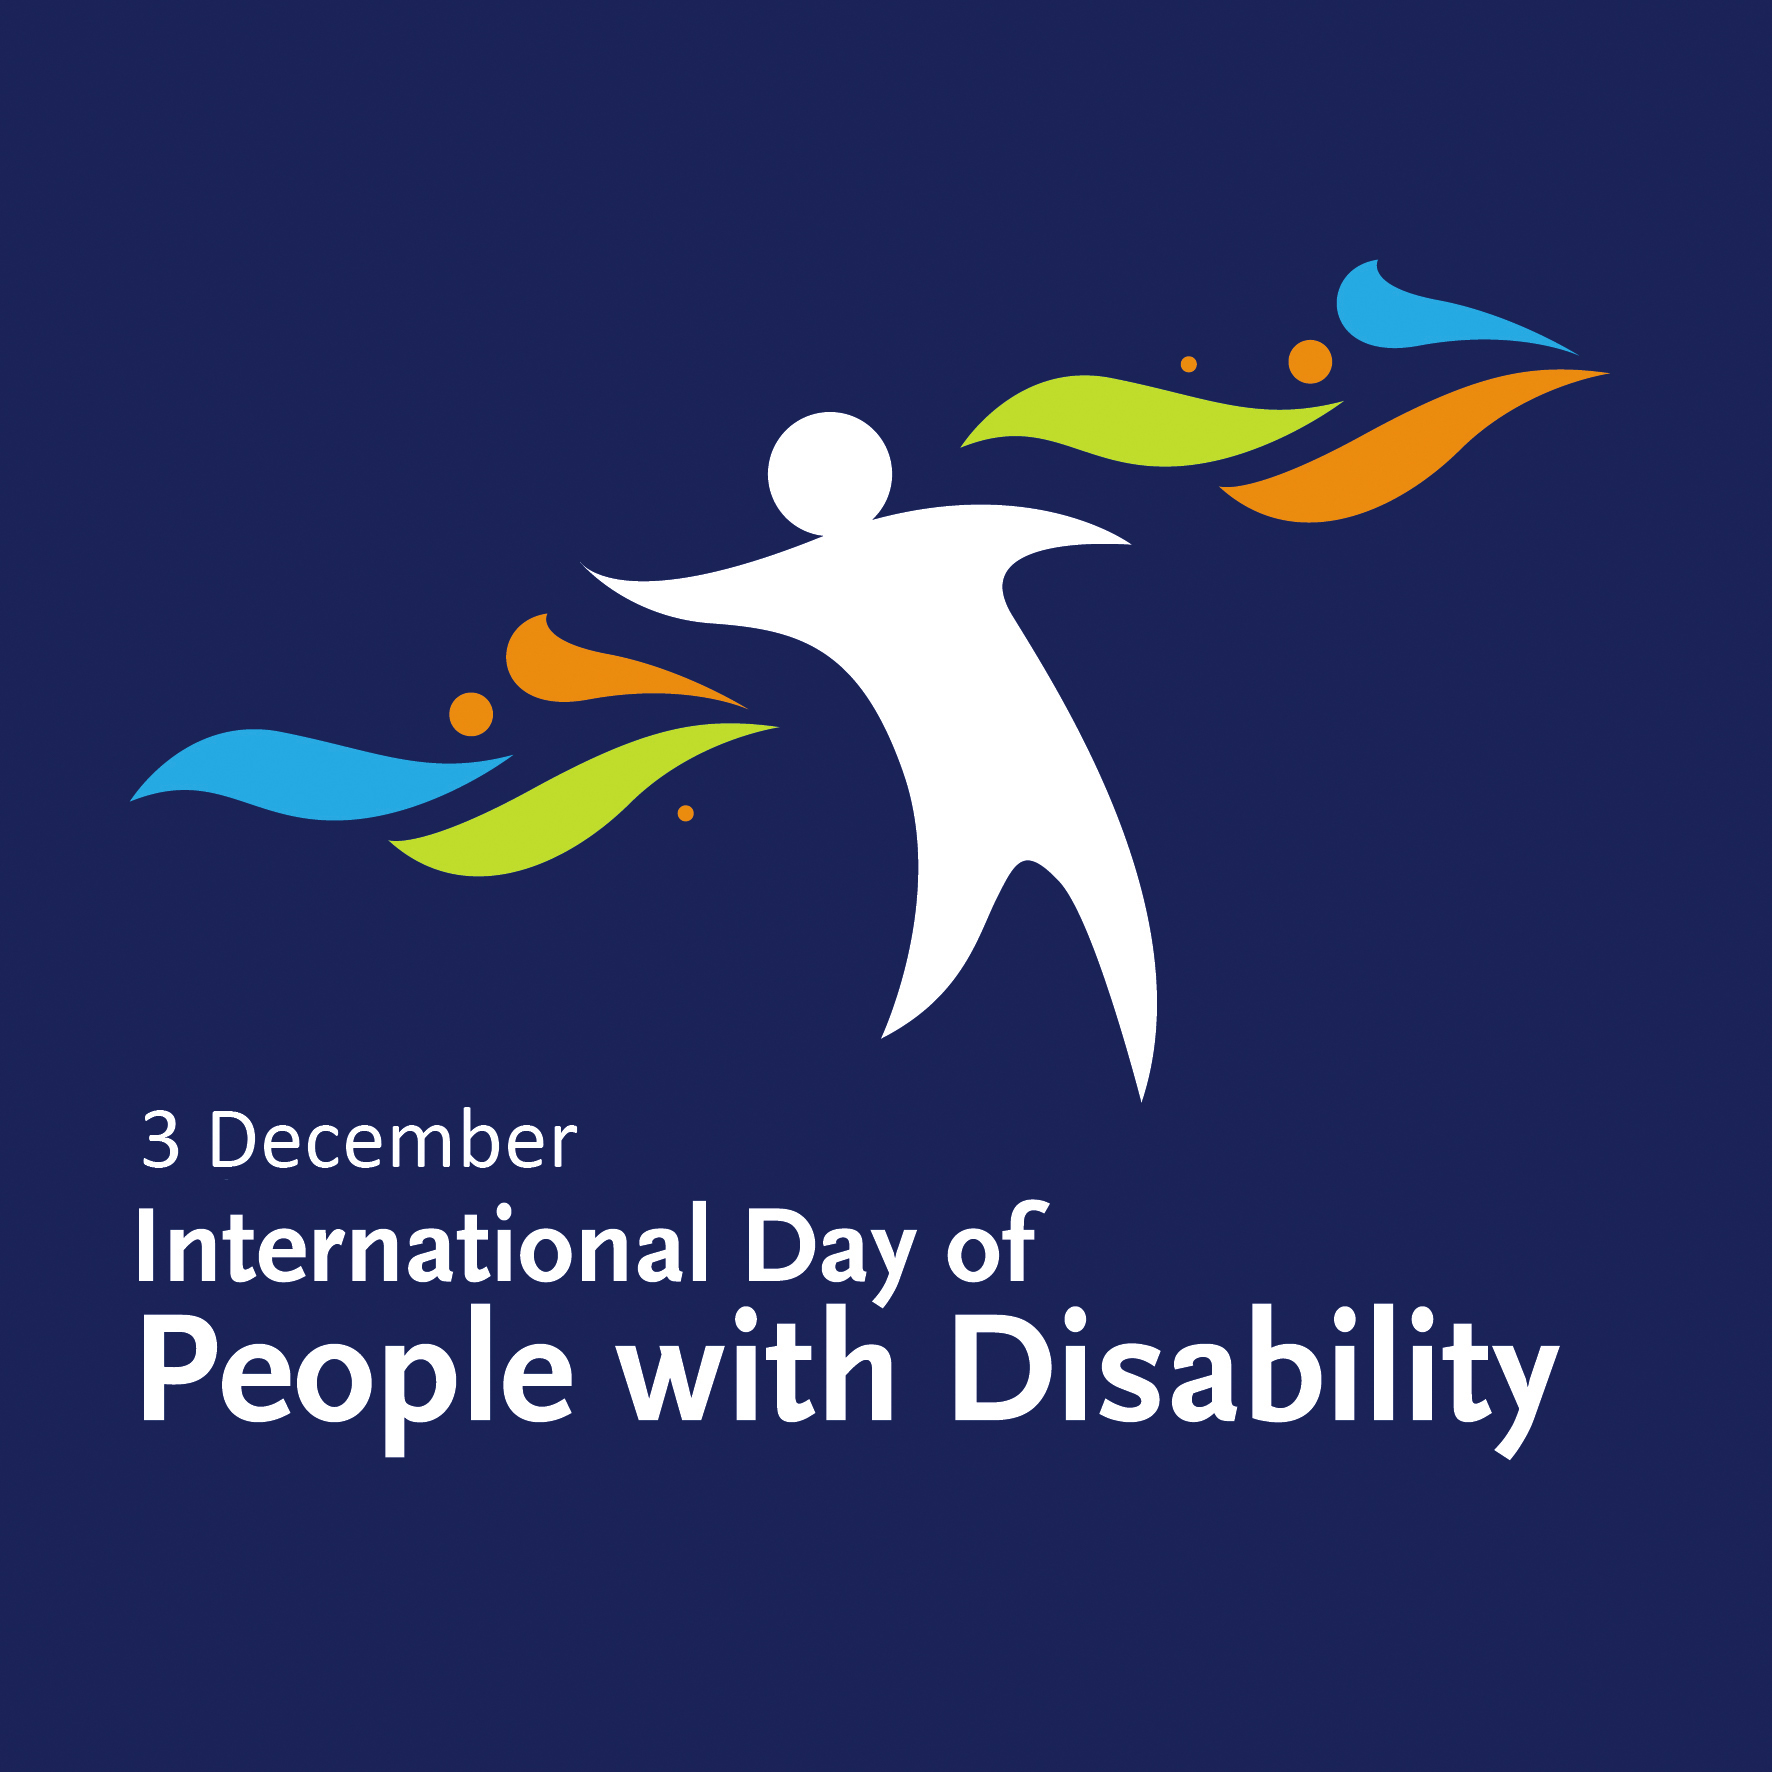 International Day of Persons with Disabilities on 3rd December